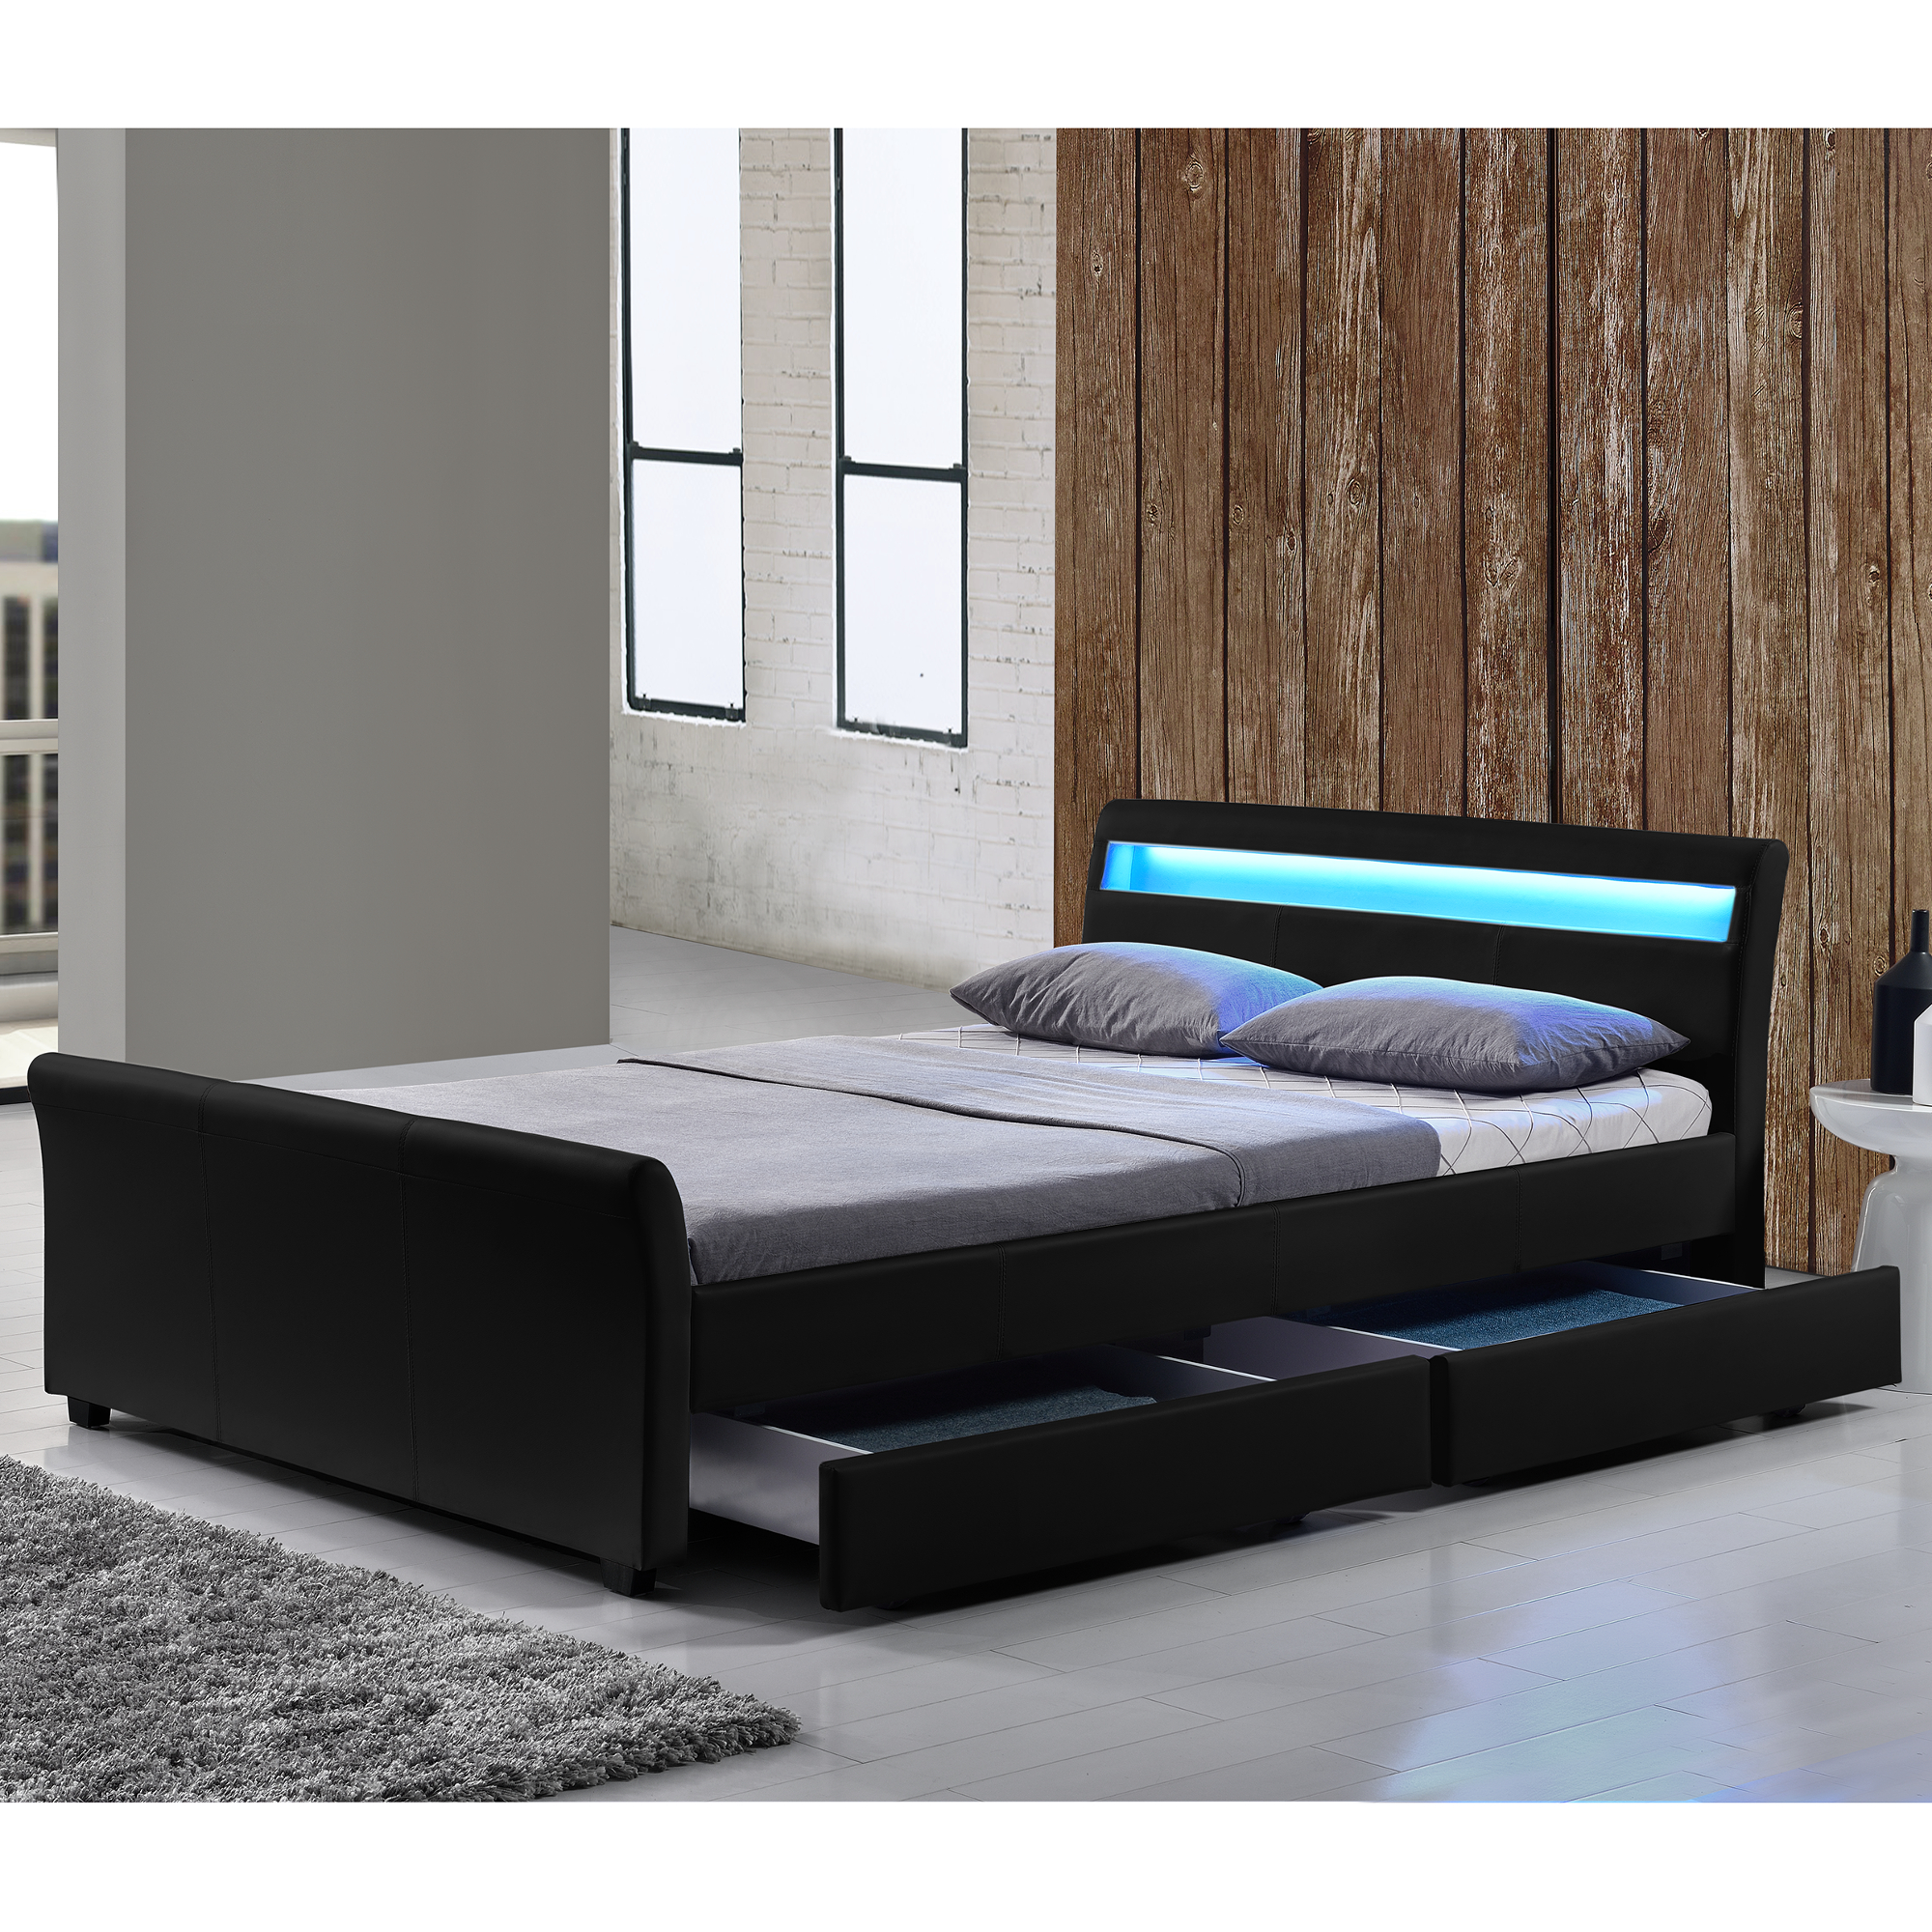 led polsterbett 140 160 180 200 x 200 cm doppel ehe bett gestell kunst leder ebay. Black Bedroom Furniture Sets. Home Design Ideas